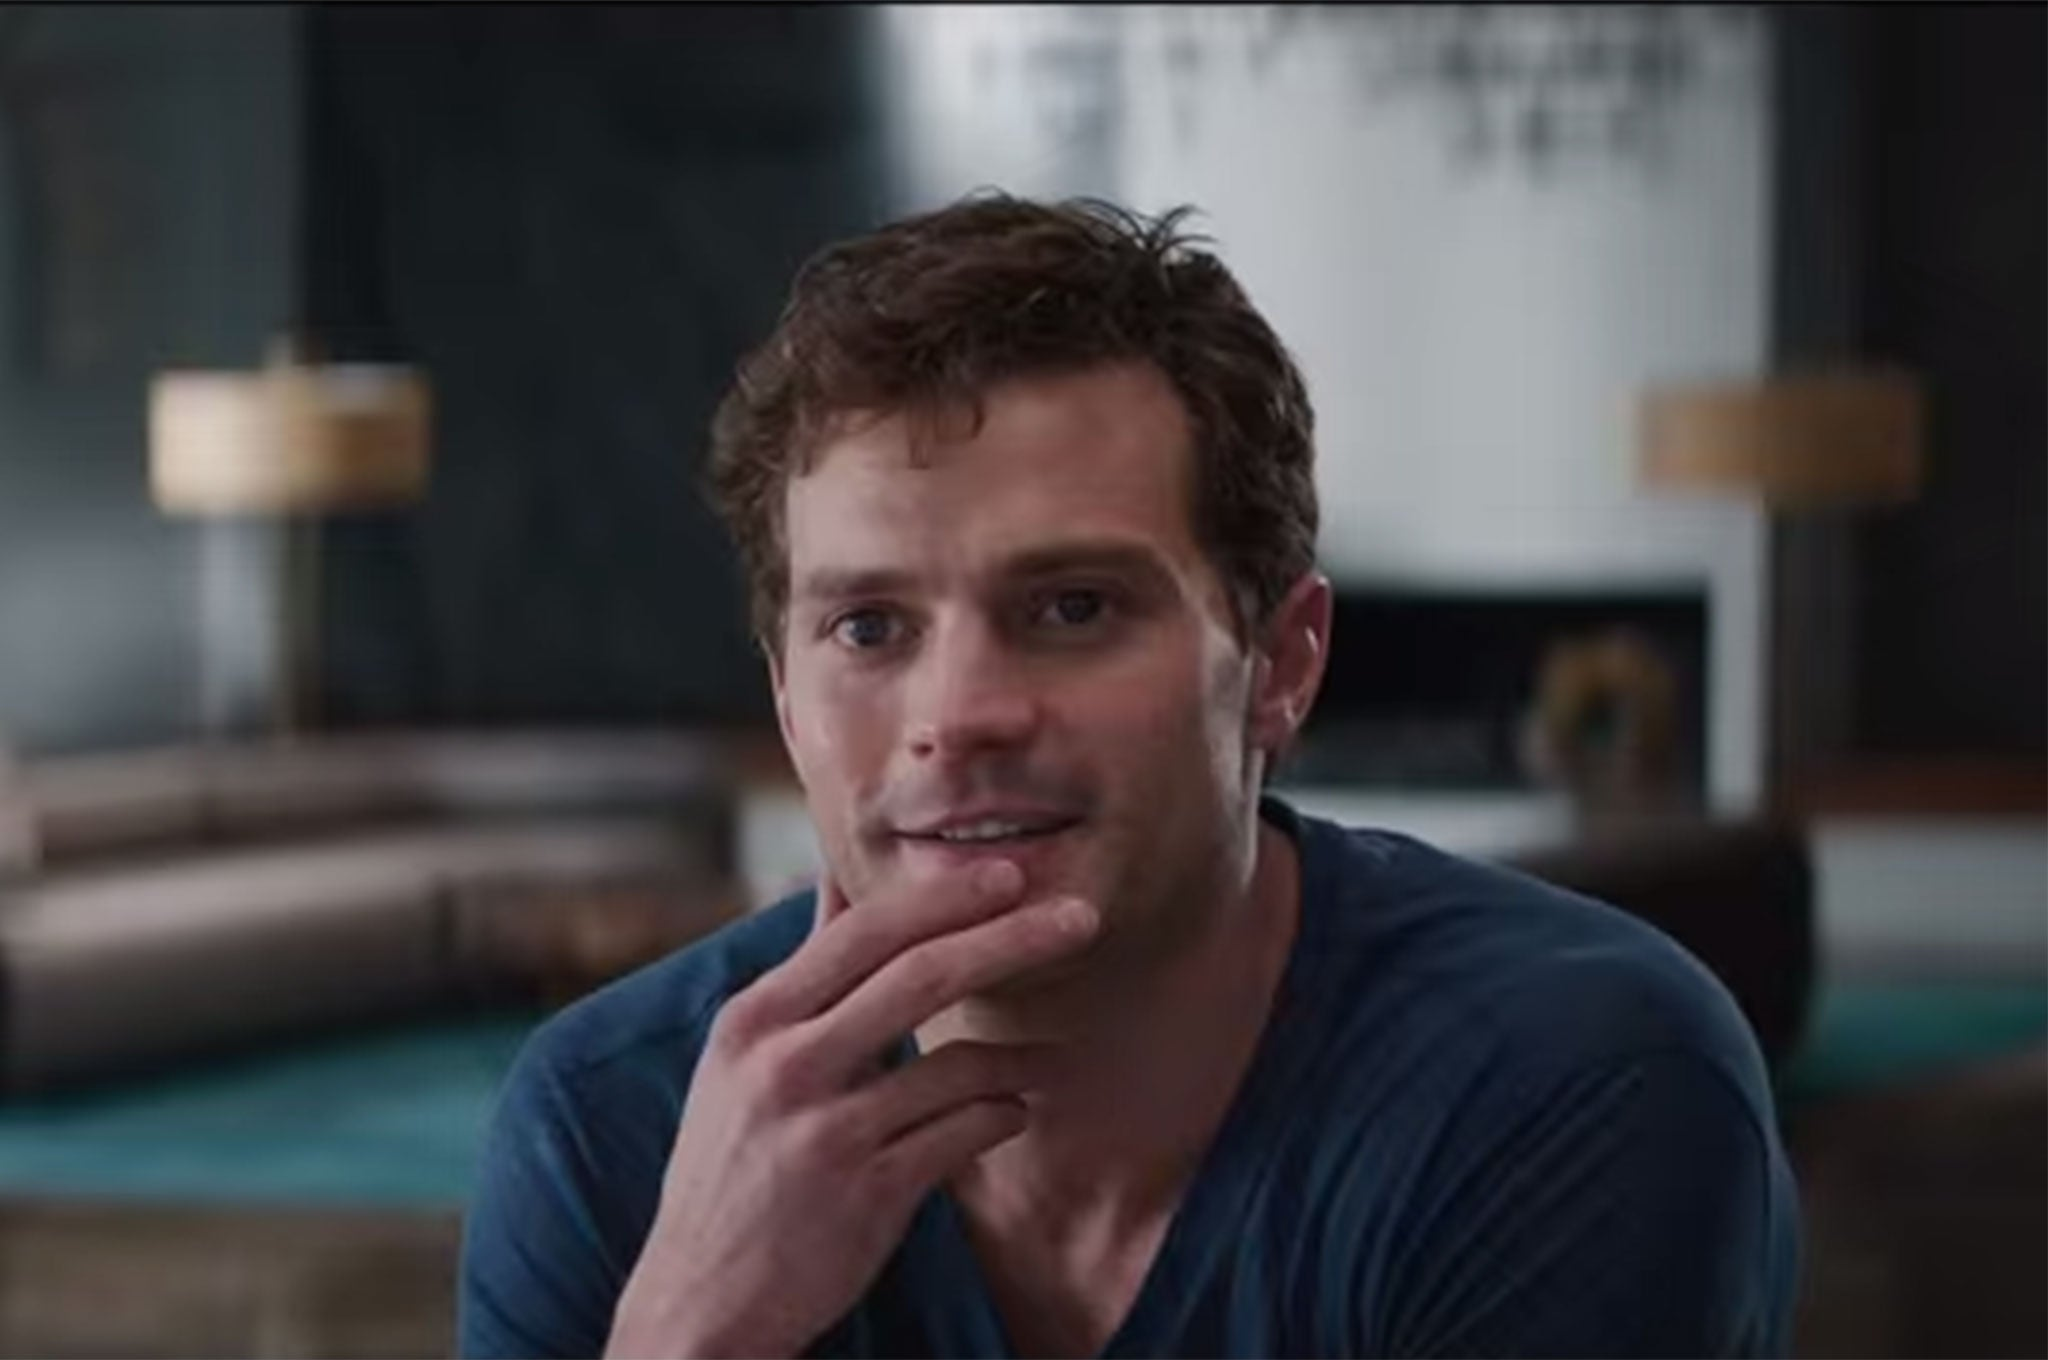 fifty shades of grey movie must watch extended trailer released fifty shades of grey movie must watch extended trailer released during golden globes the independent